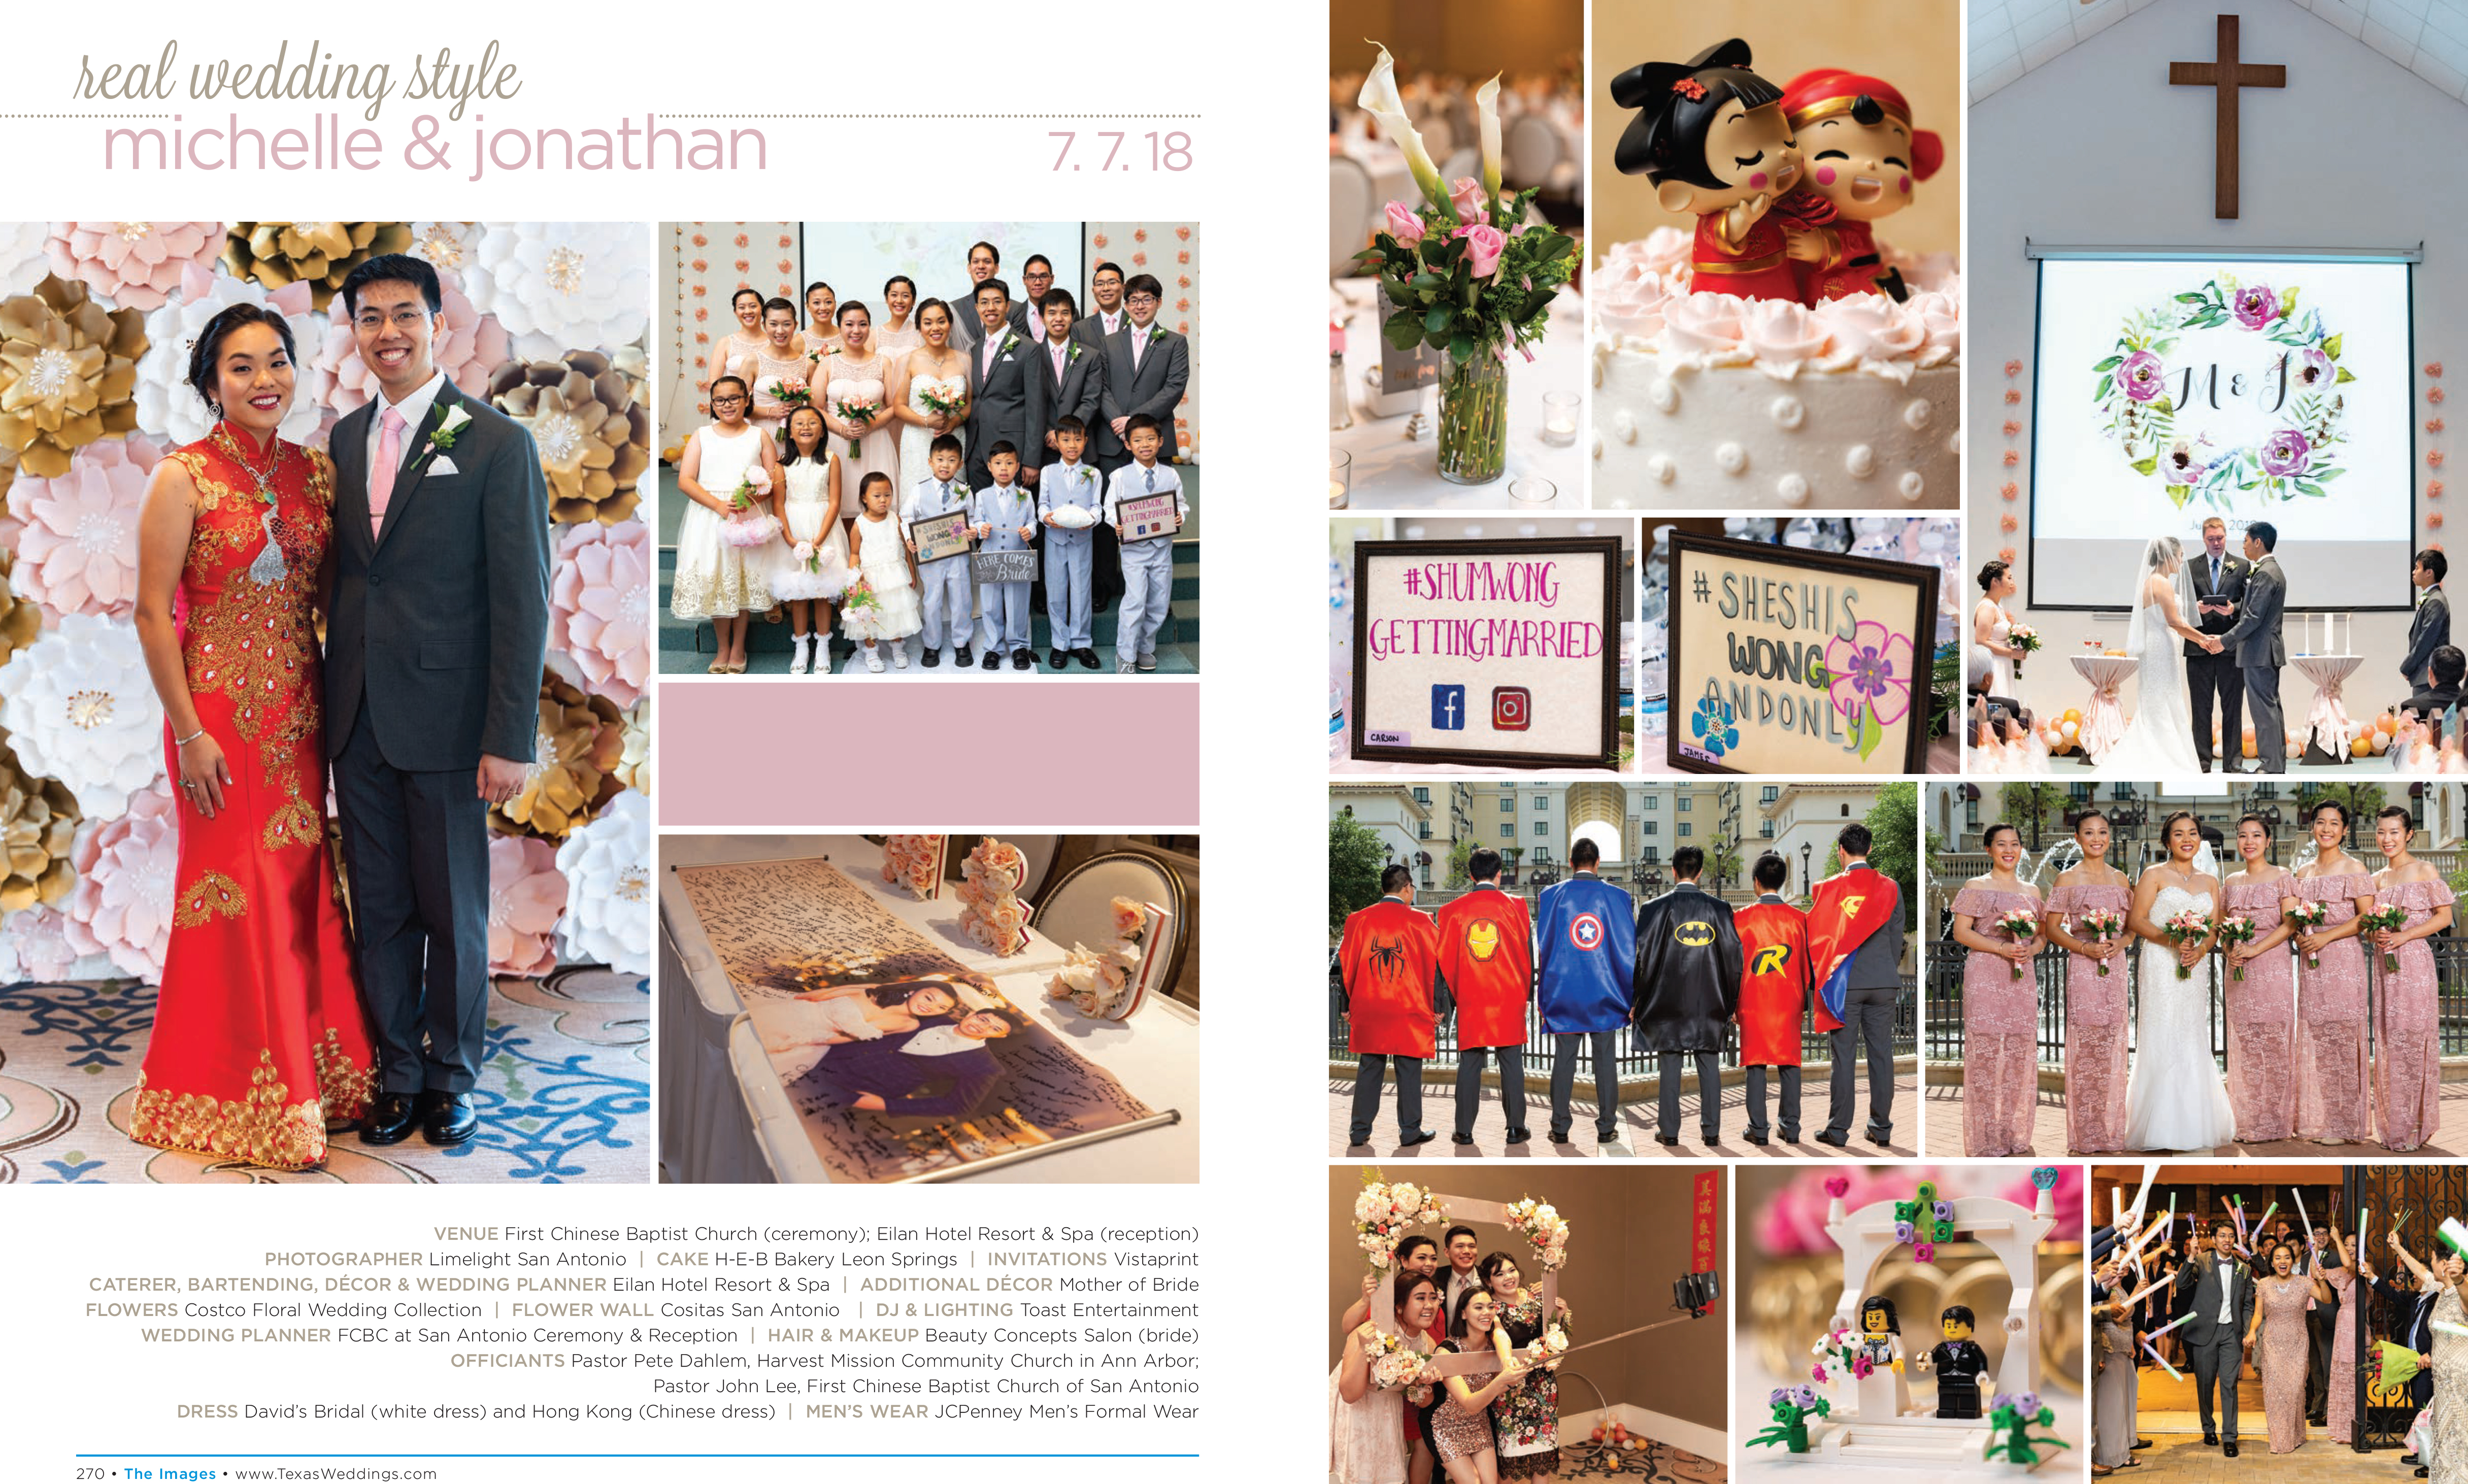 Michelle & Jonathan in their Real Wedding Page in the Spring/Summer 2019 Texas Wedding Guide